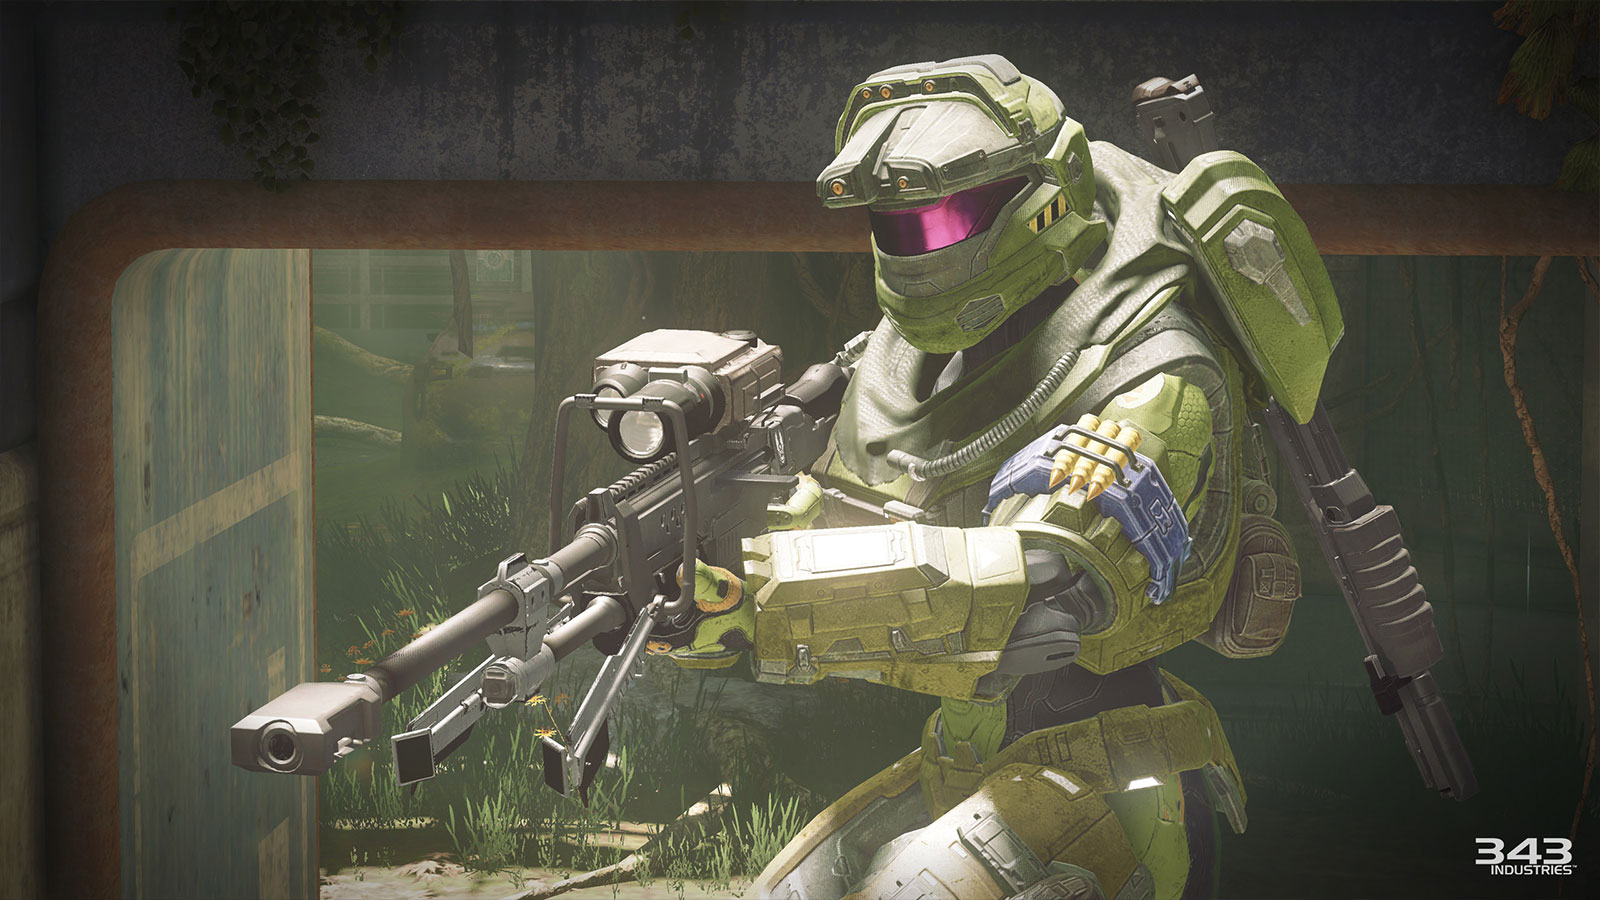 A 3D-generated character in futuristic green armor looks toward the left, crouching and holding a large, scoped rifle.